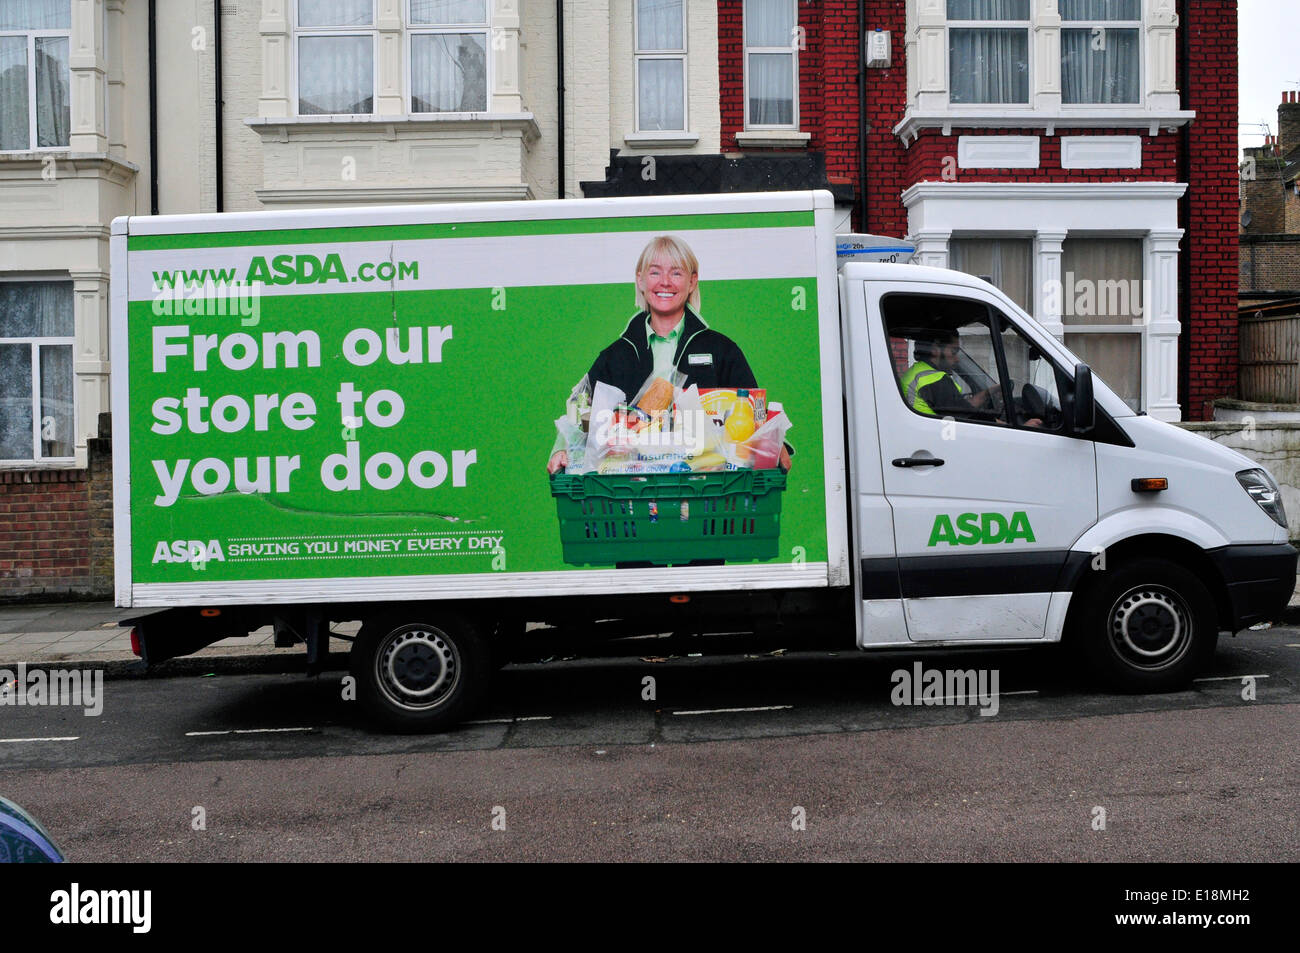 An ASDA delivery van parked in Harlesden, North London, UK - Stock Image